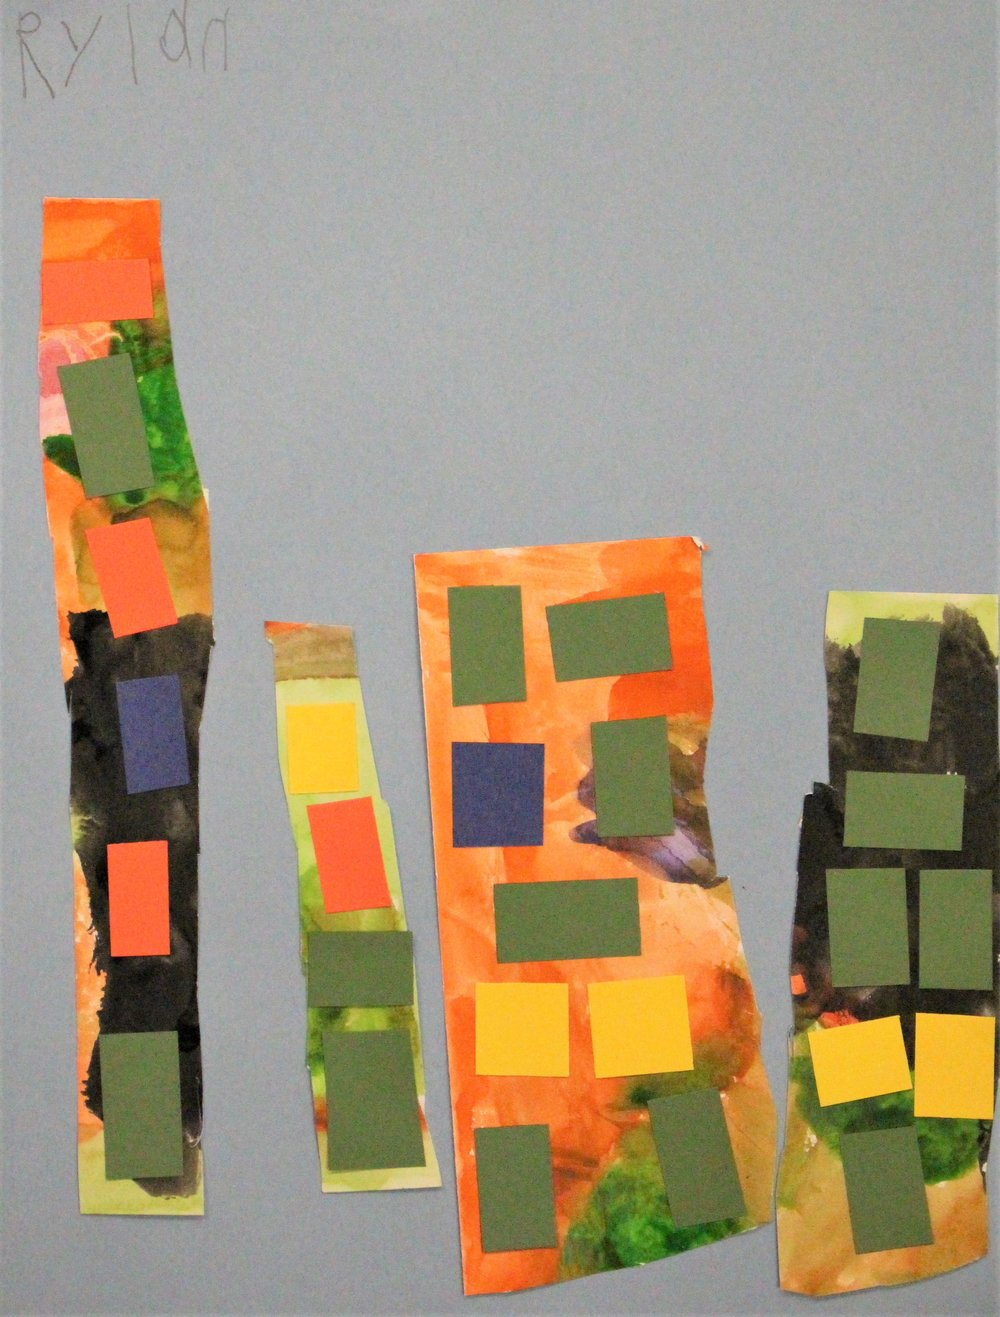 Kindergarten: Rylan S. - Artwork: Painted Paper City(Work in Progress)